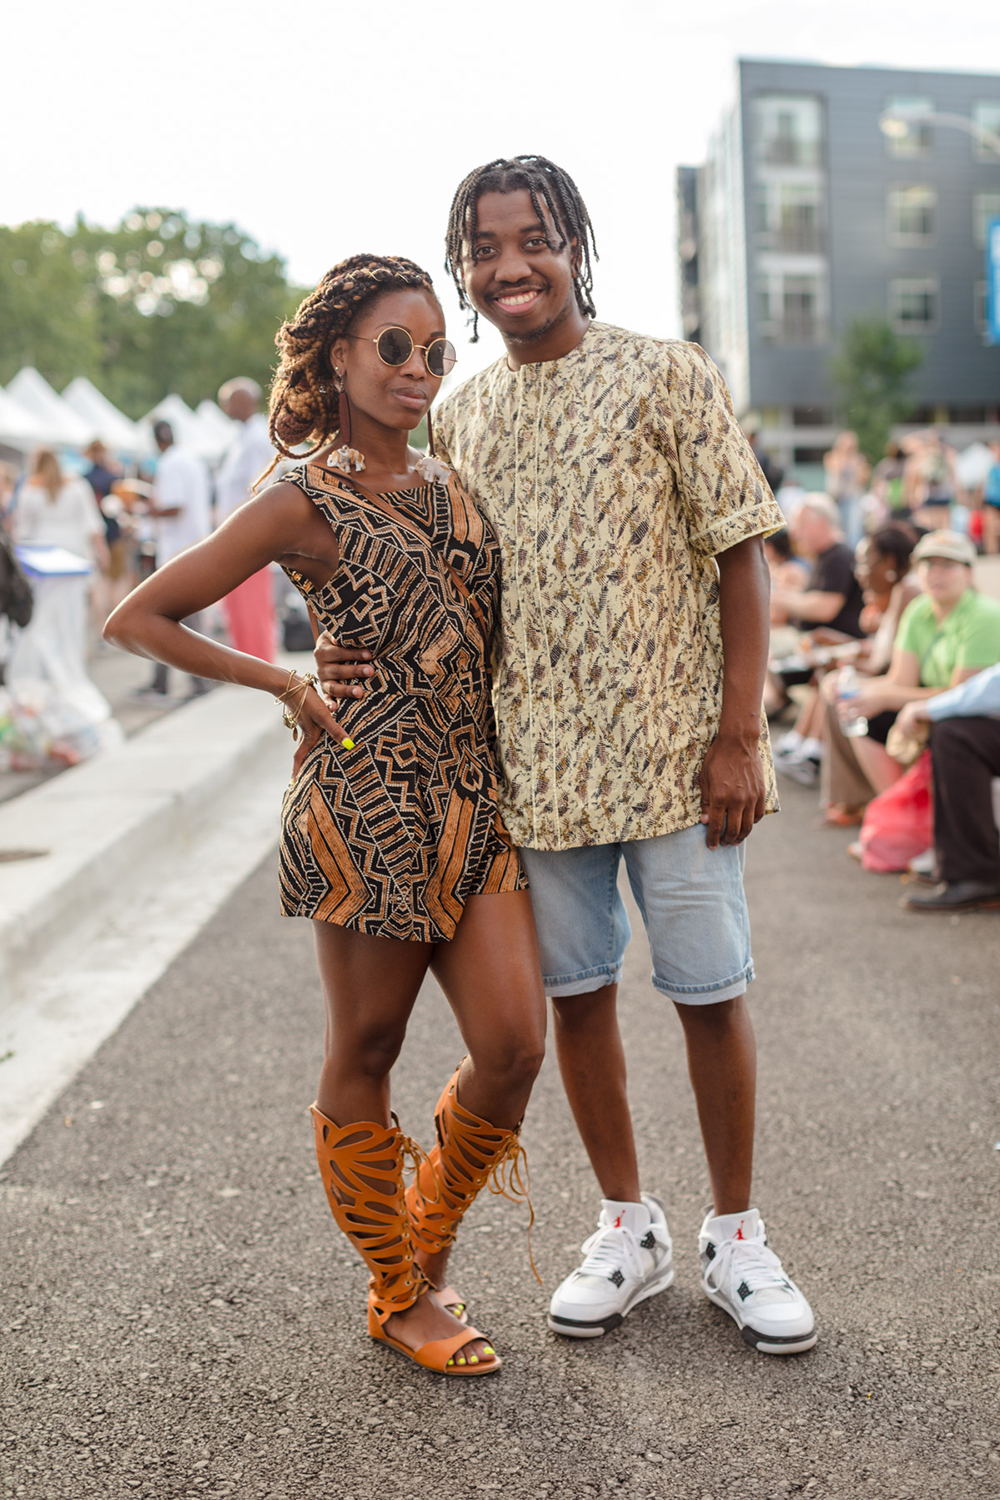 Artscape-Tracee-Bryant-Street-Style-at-Baltimore-2018-Artscape-photography-by-Armenyl-4.jpg#asset:64080